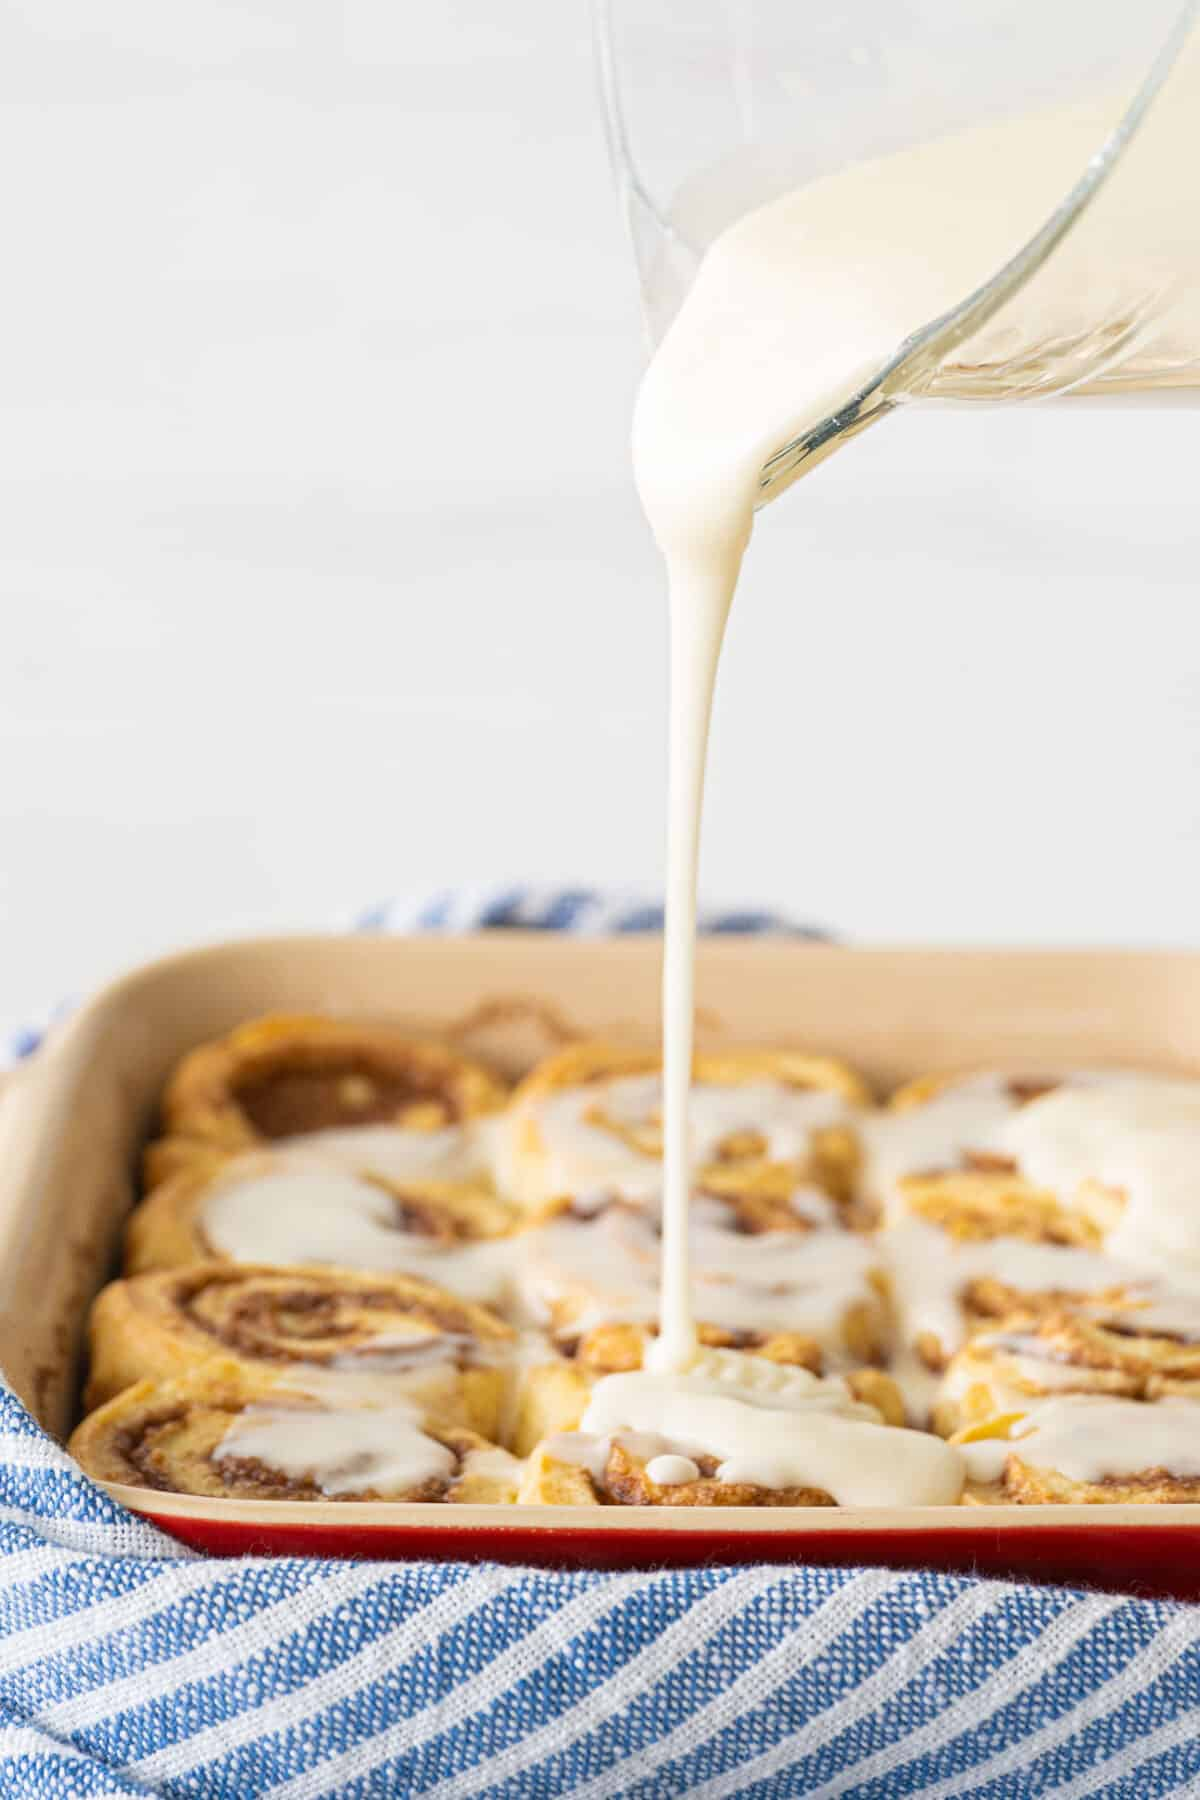 icing being poured over cinnamon rolls in a pan